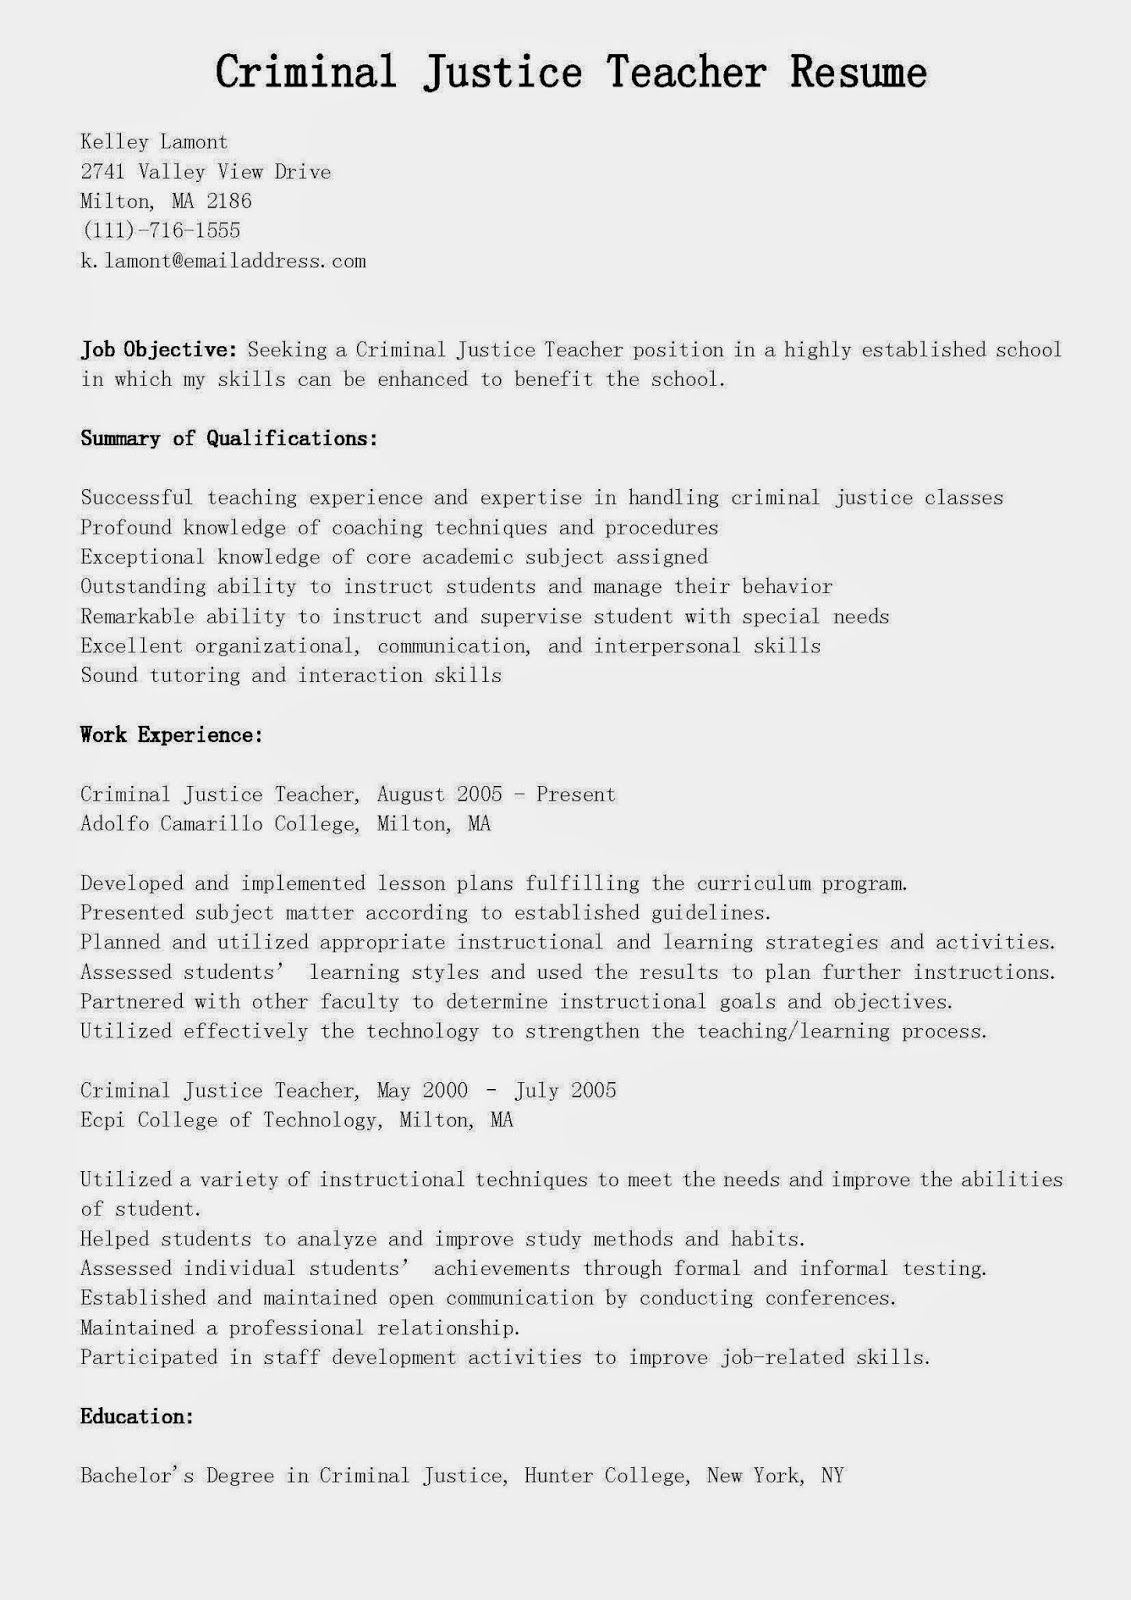 Resume Samples Criminal Justice Teacher Resume Sample